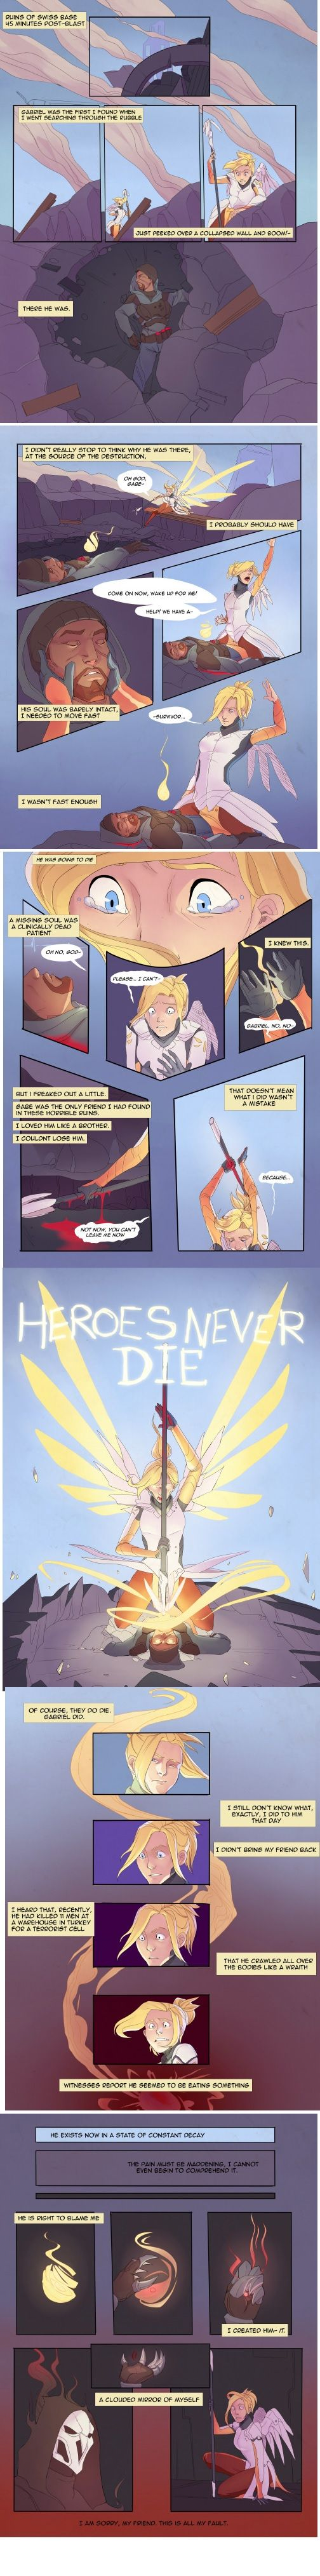 6 pages of fanmade comic about Mercy and Reaper (Overwatch) http://ift.tt/2guDqfB